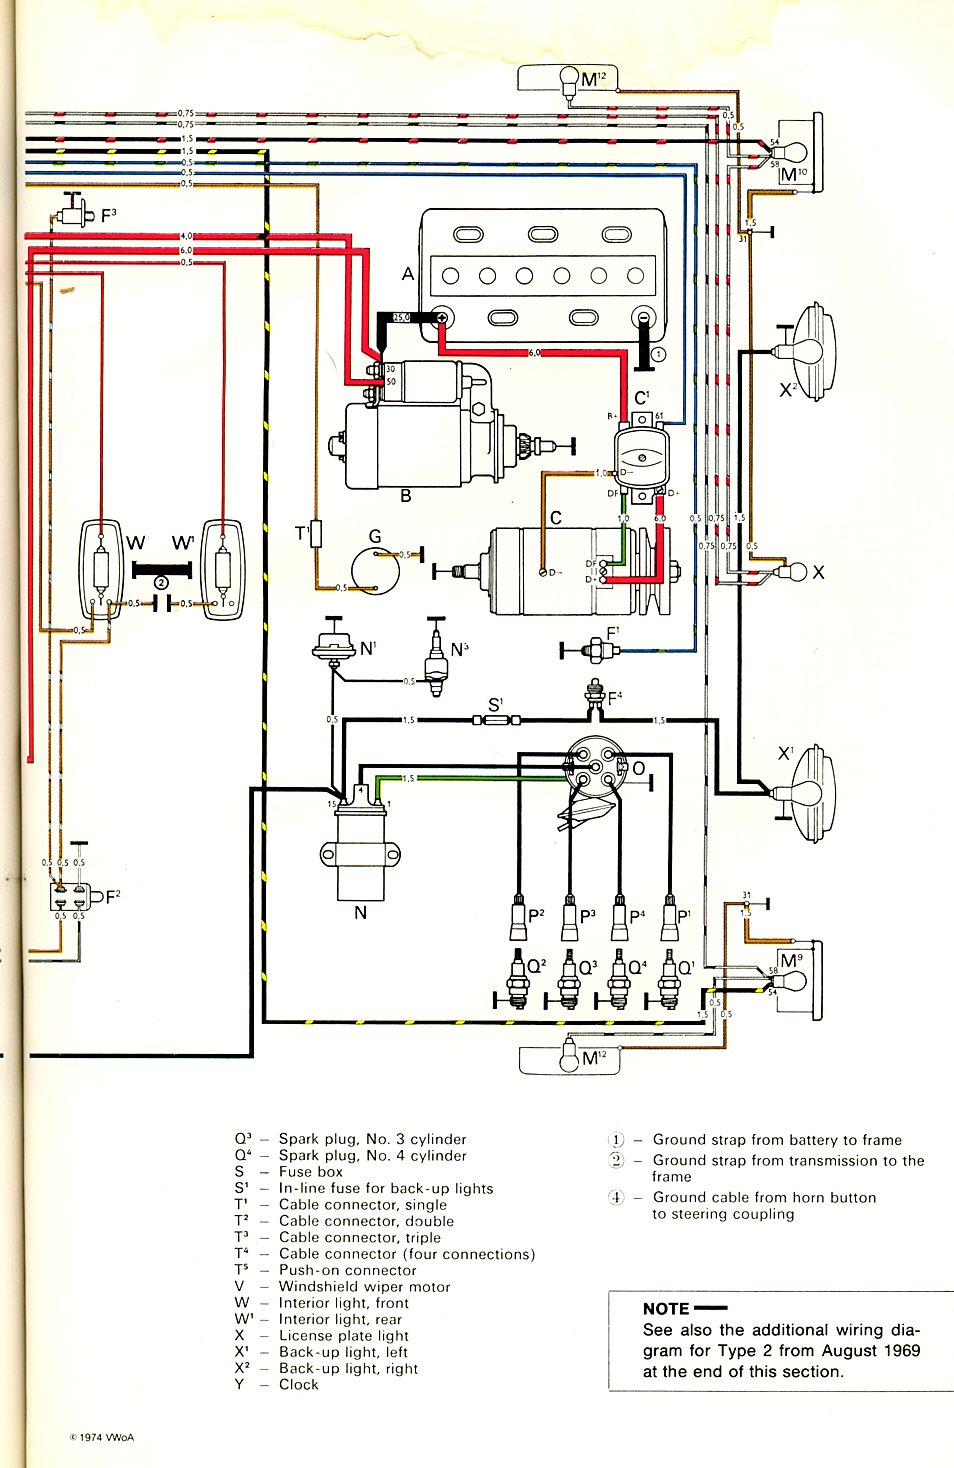 baybus_70b thesamba com type 2 wiring diagrams vw engine wiring diagram at couponss.co